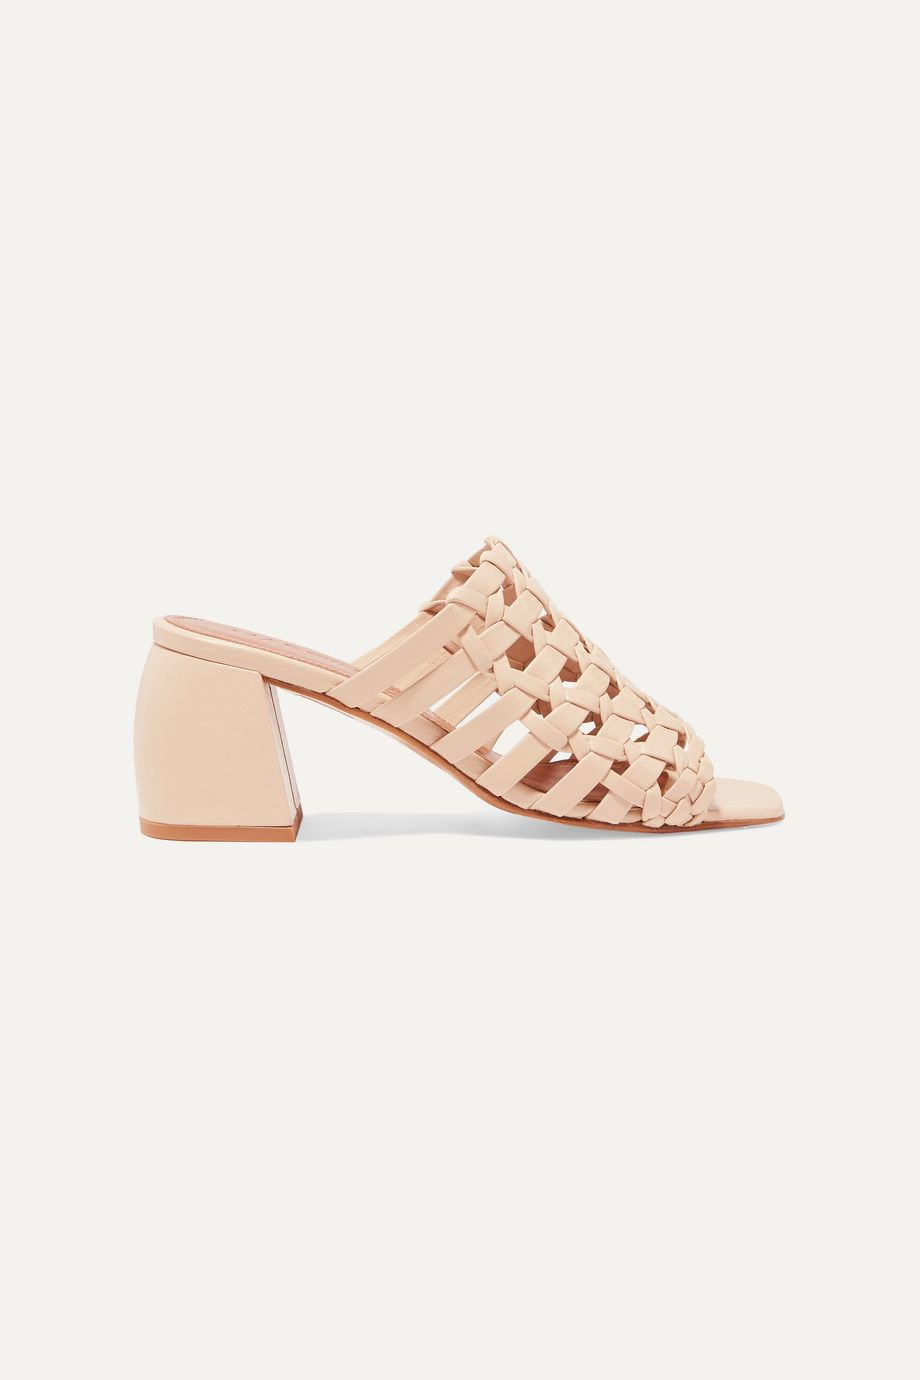 Souliers Martinez Barcelona woven leather mules